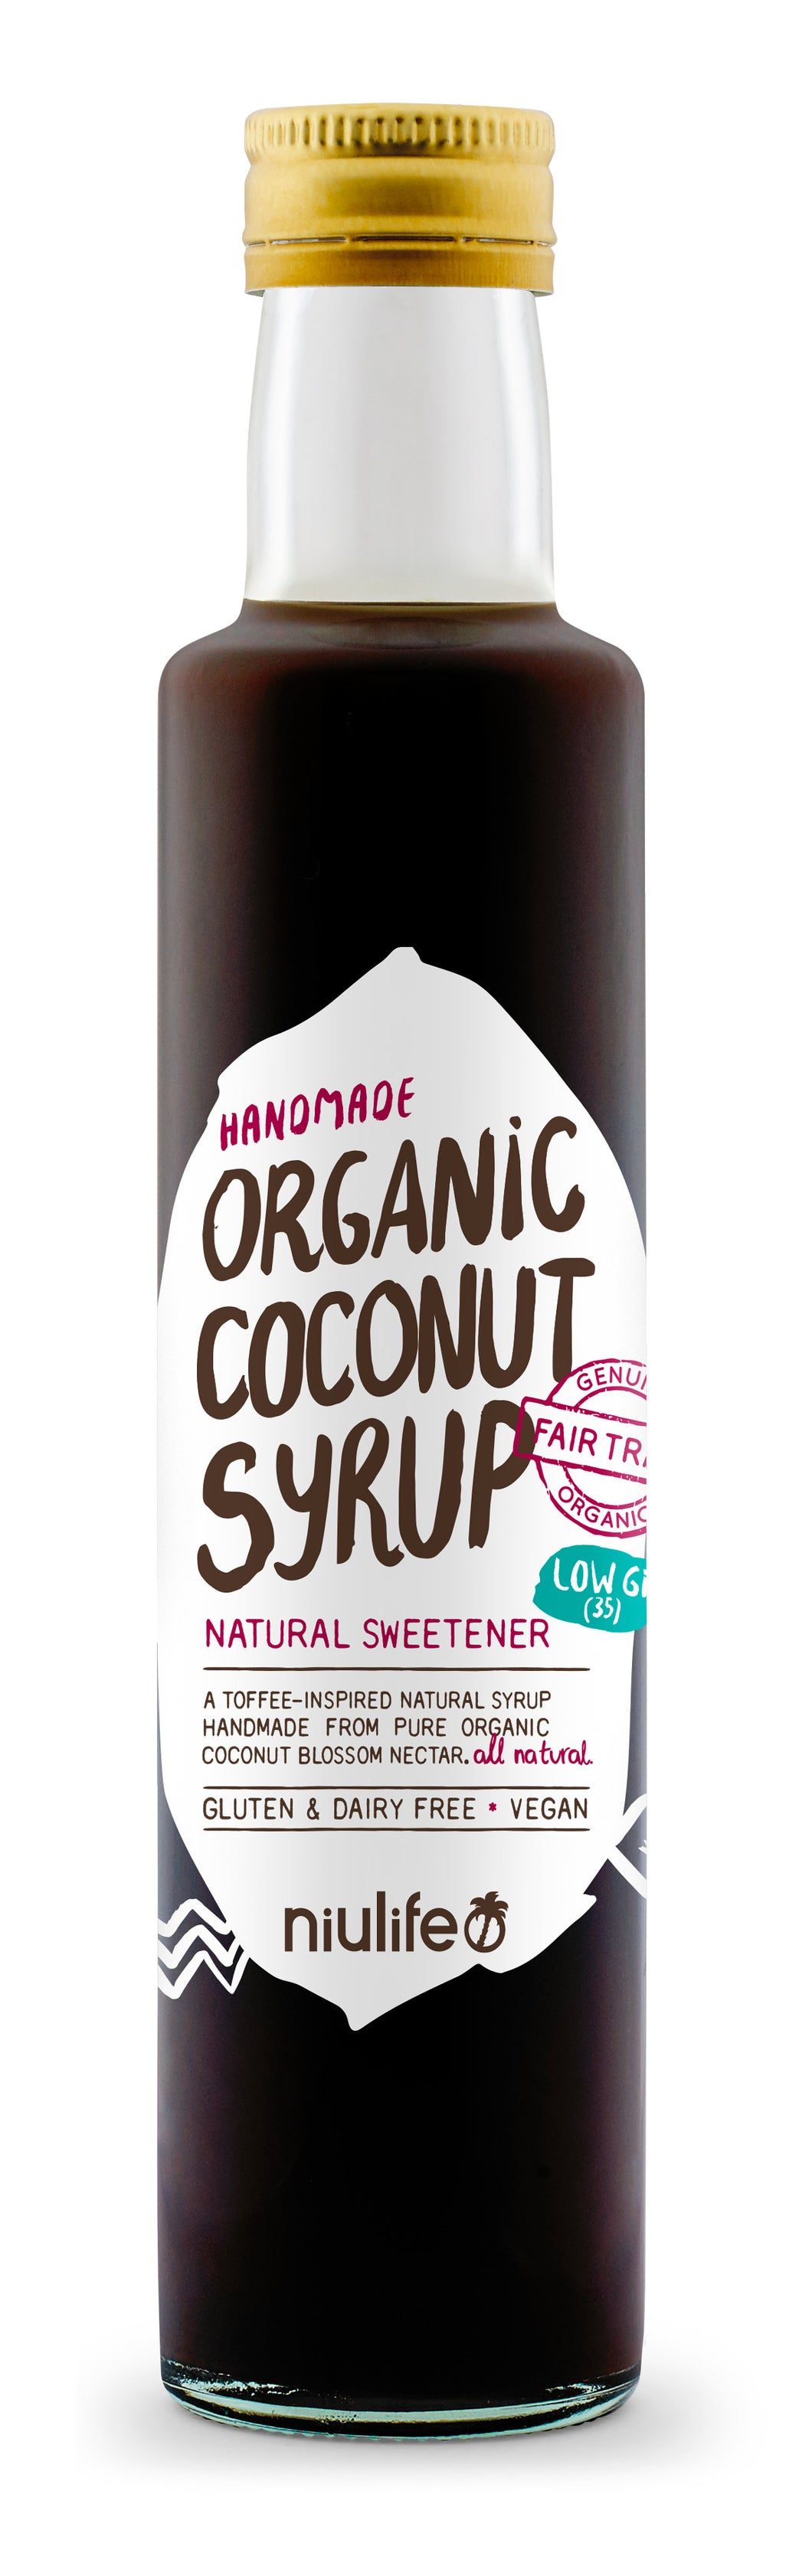 BBD 31 JUL Niulife Organic Low Gi Handmade Coconut Syrup (250ml) (LIMITED) UP$19.90 SP$9.90 - mrs-free-singapore